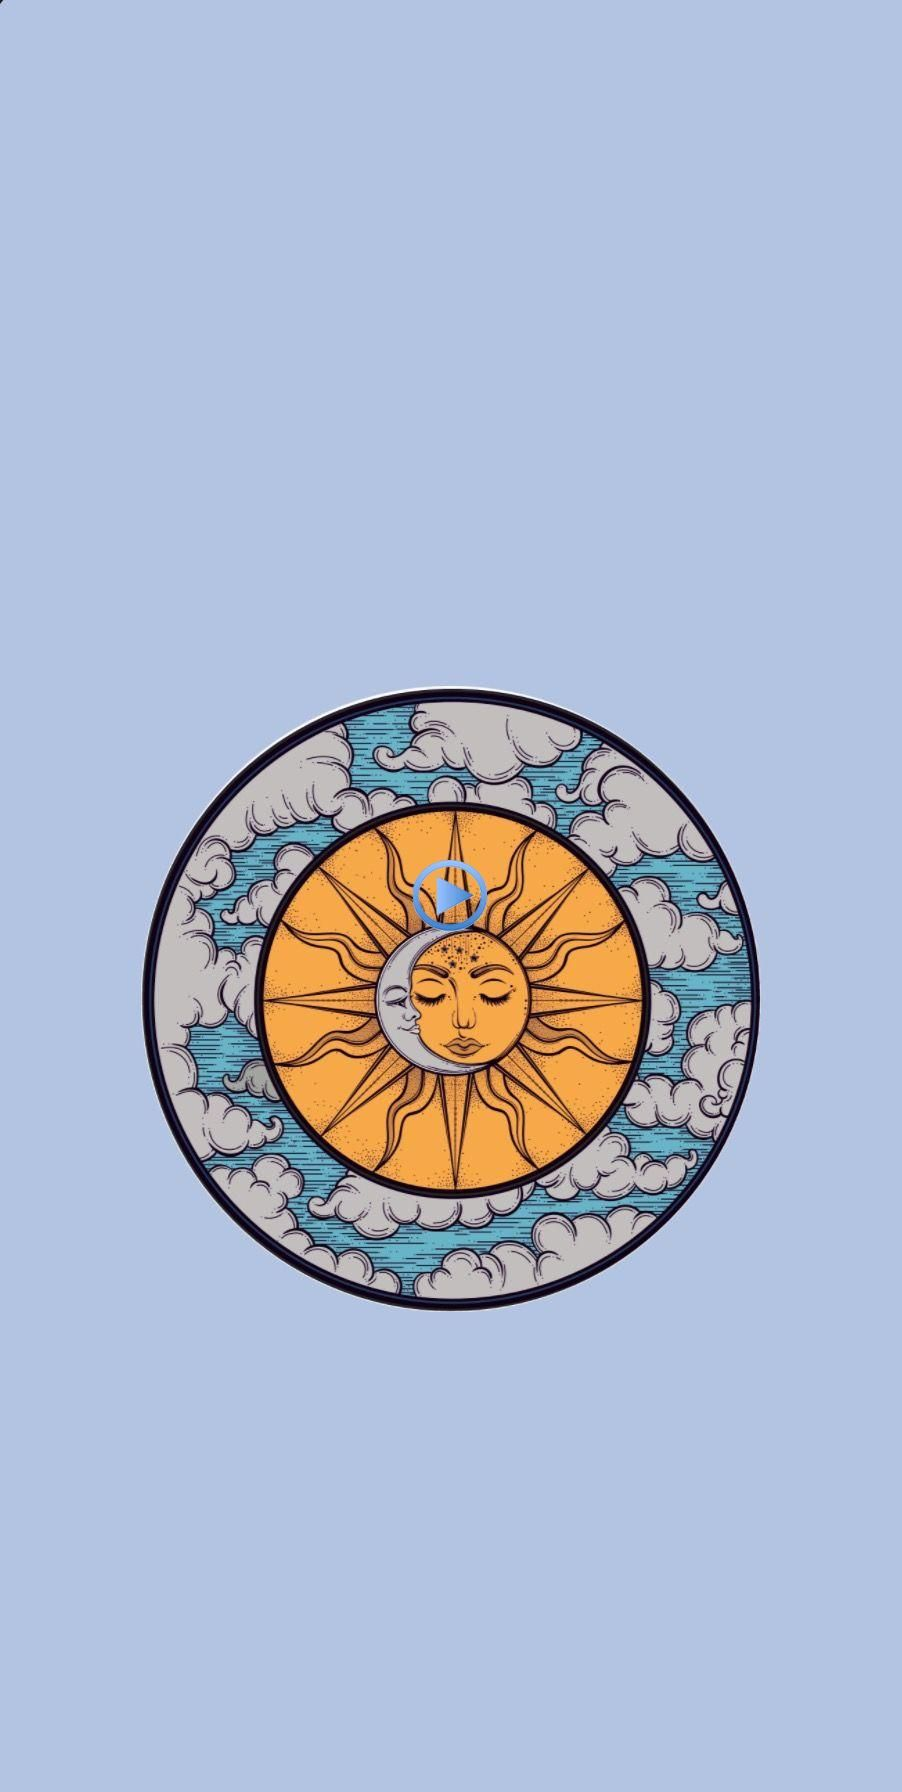 Hippie Wallpaper Hippie Wallpaper Aesthetic Iphone Wallpaper Iphone Wallpaper